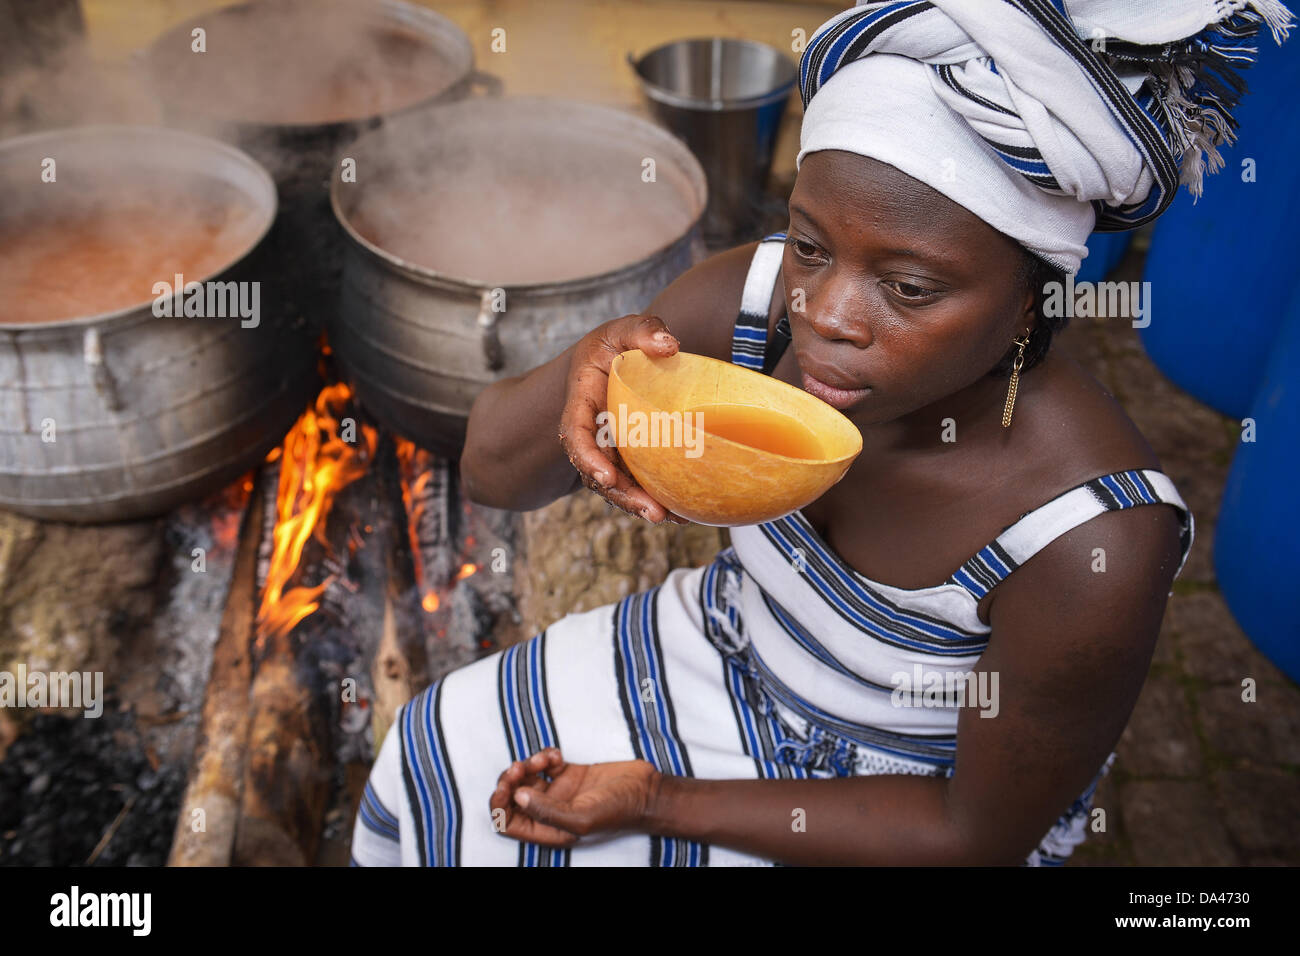 Master brewer from Burkina Faso, Ine Kam, samples her millet beer at the brewery of Weissenohe Abbey in Weissenohe, - Stock Image